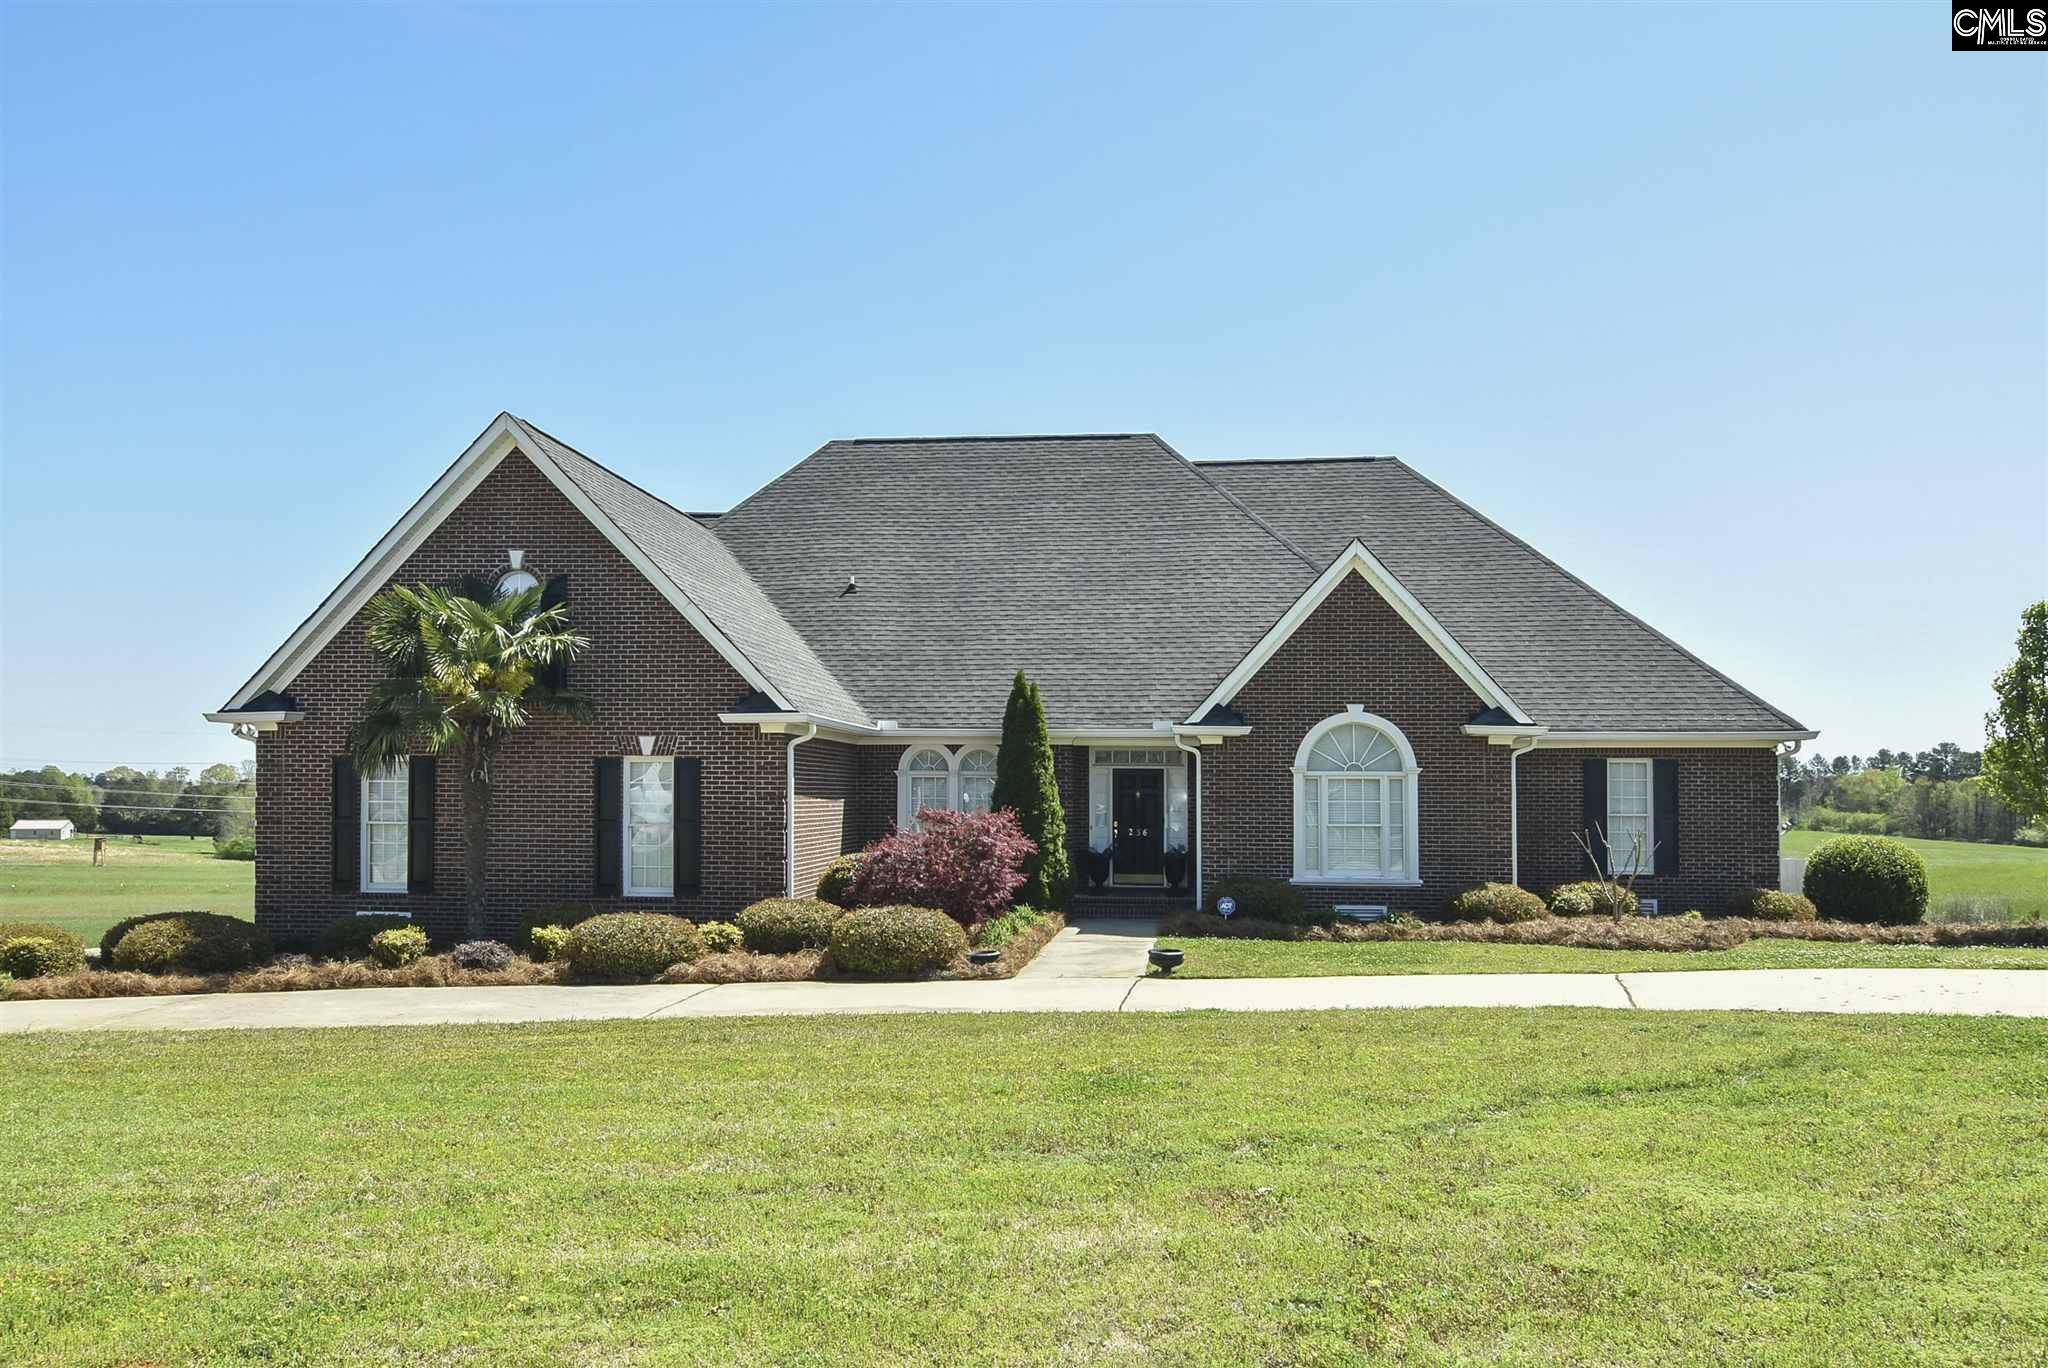 236 Morningside Newberry, SC 29108